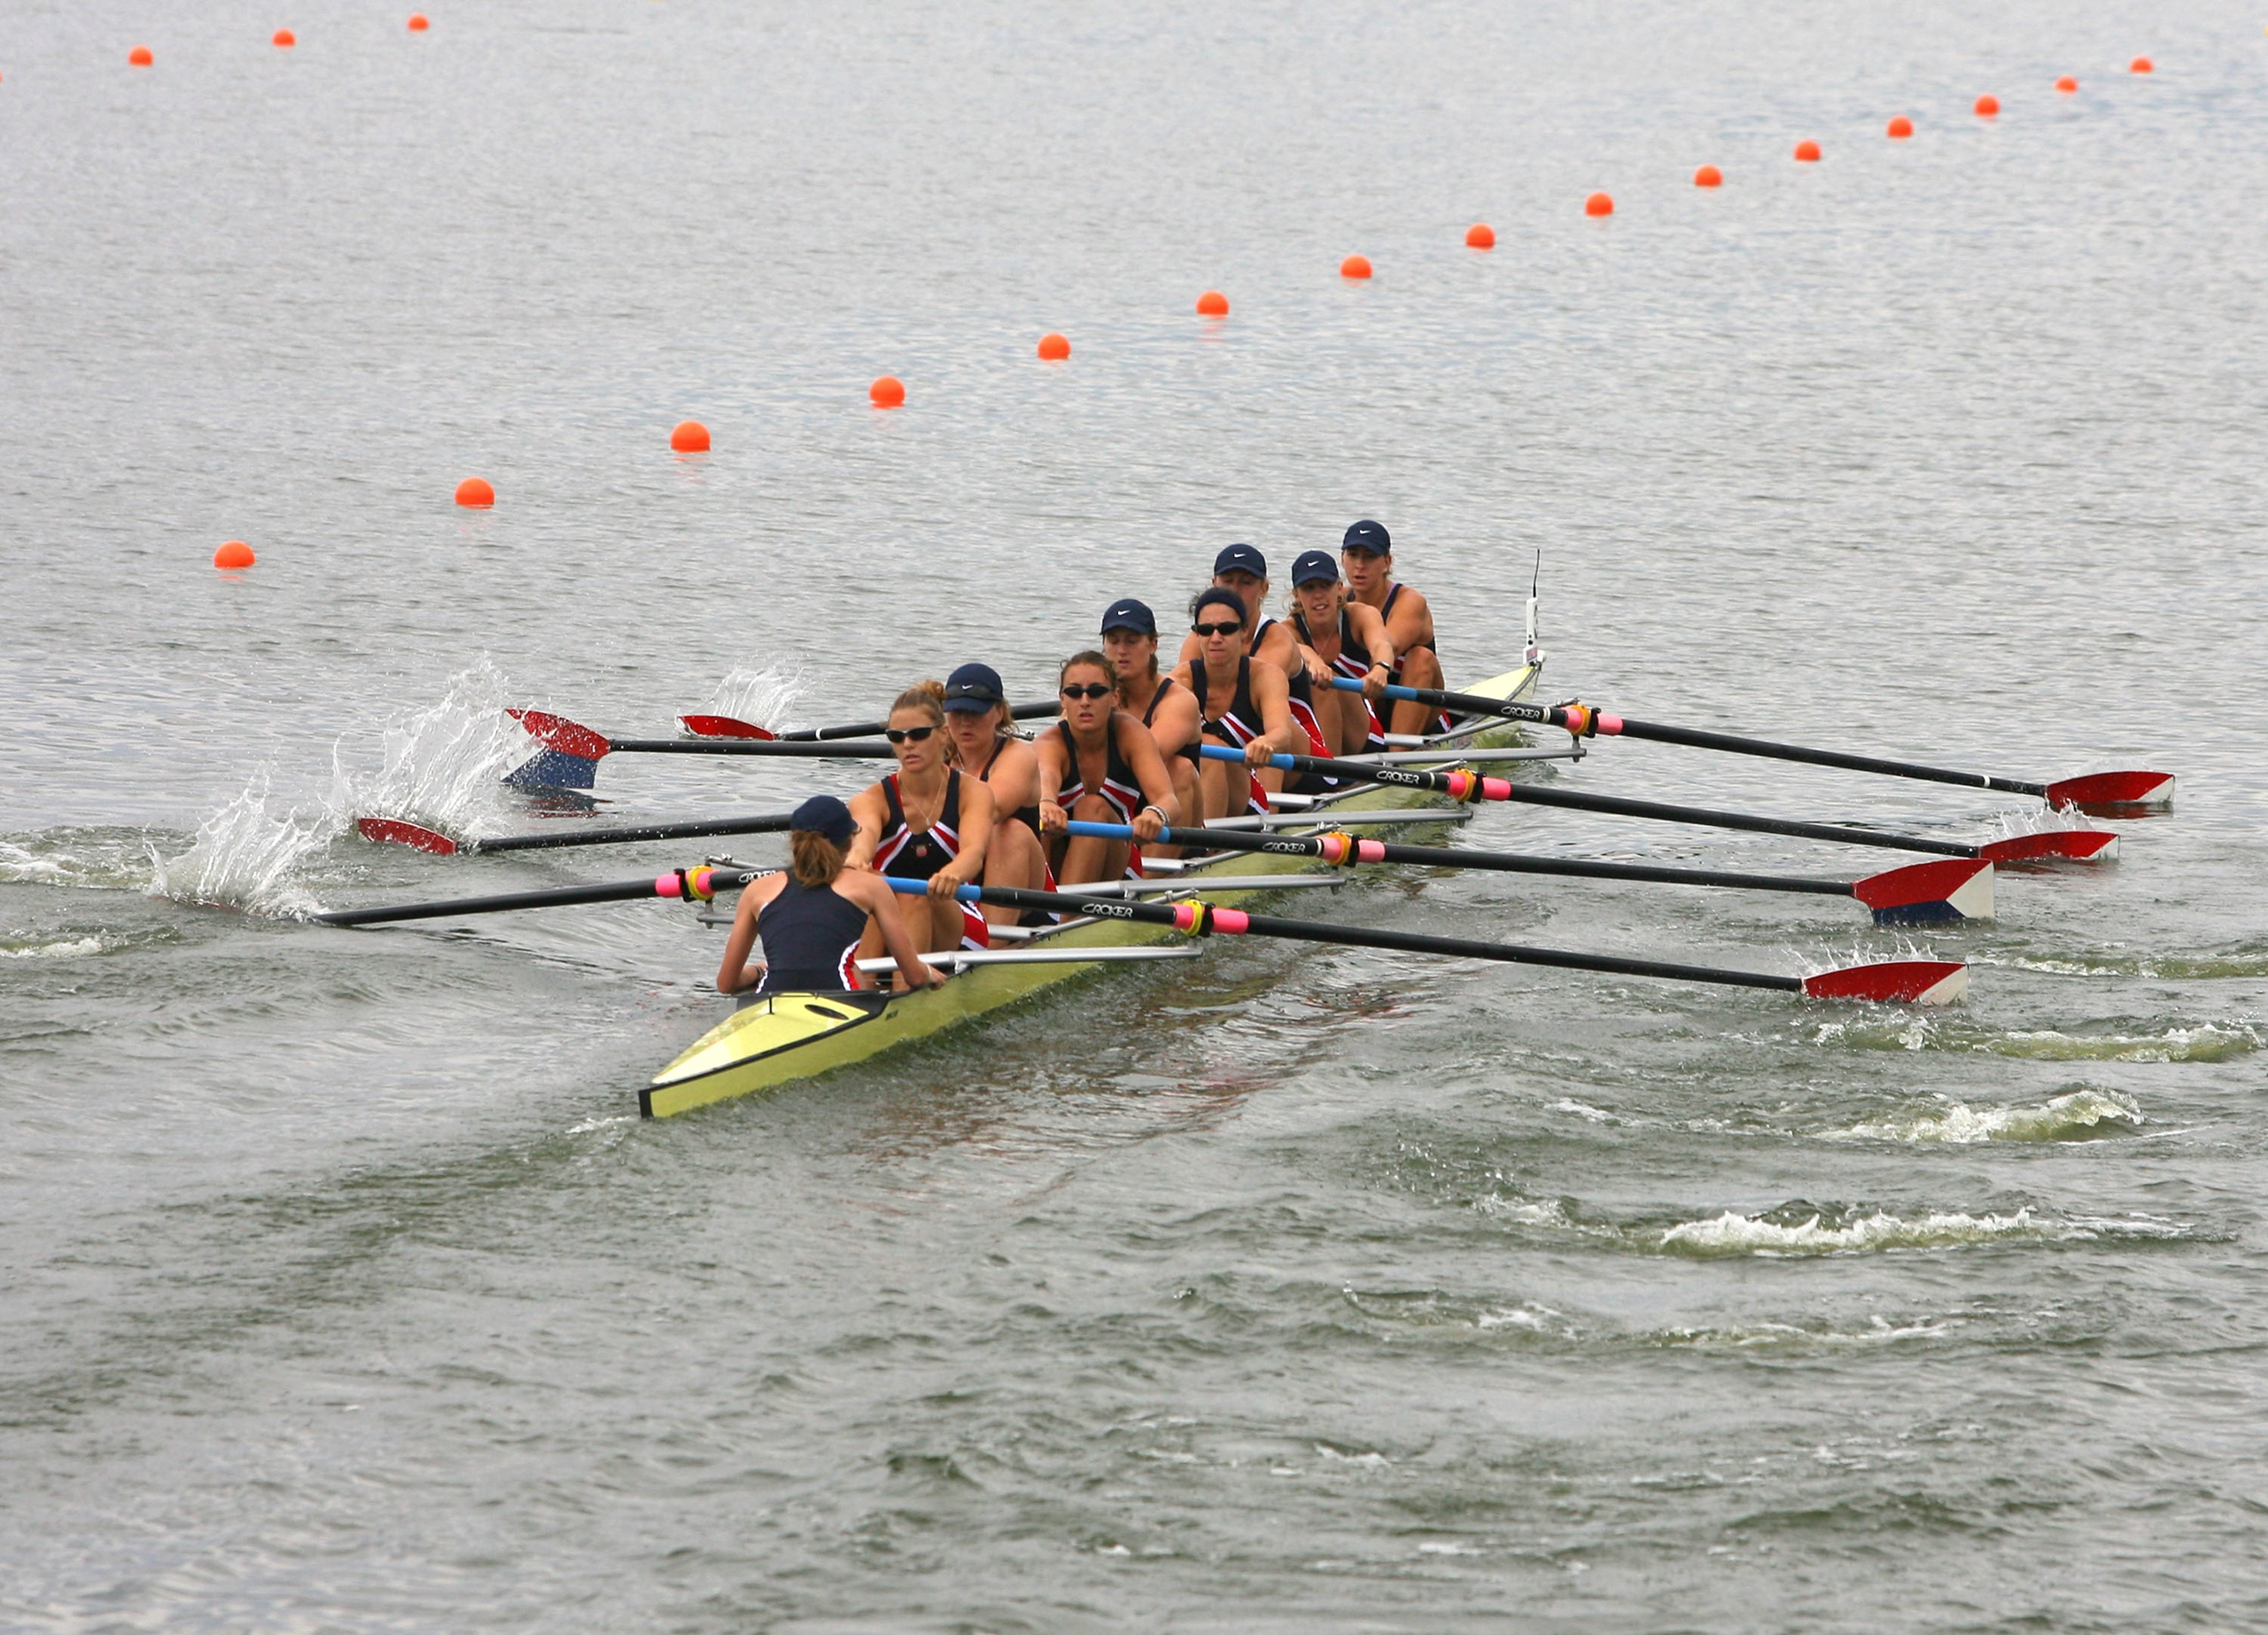 <strong>Katelin Snyder, Rowing, USA</strong>The U.S. women's eight-rowing squad has won every world title and Olympic gold medal since 2006. Snyder, the coxswain, is an Olympic rookie, but she's guided four U.S. boats to world championships.